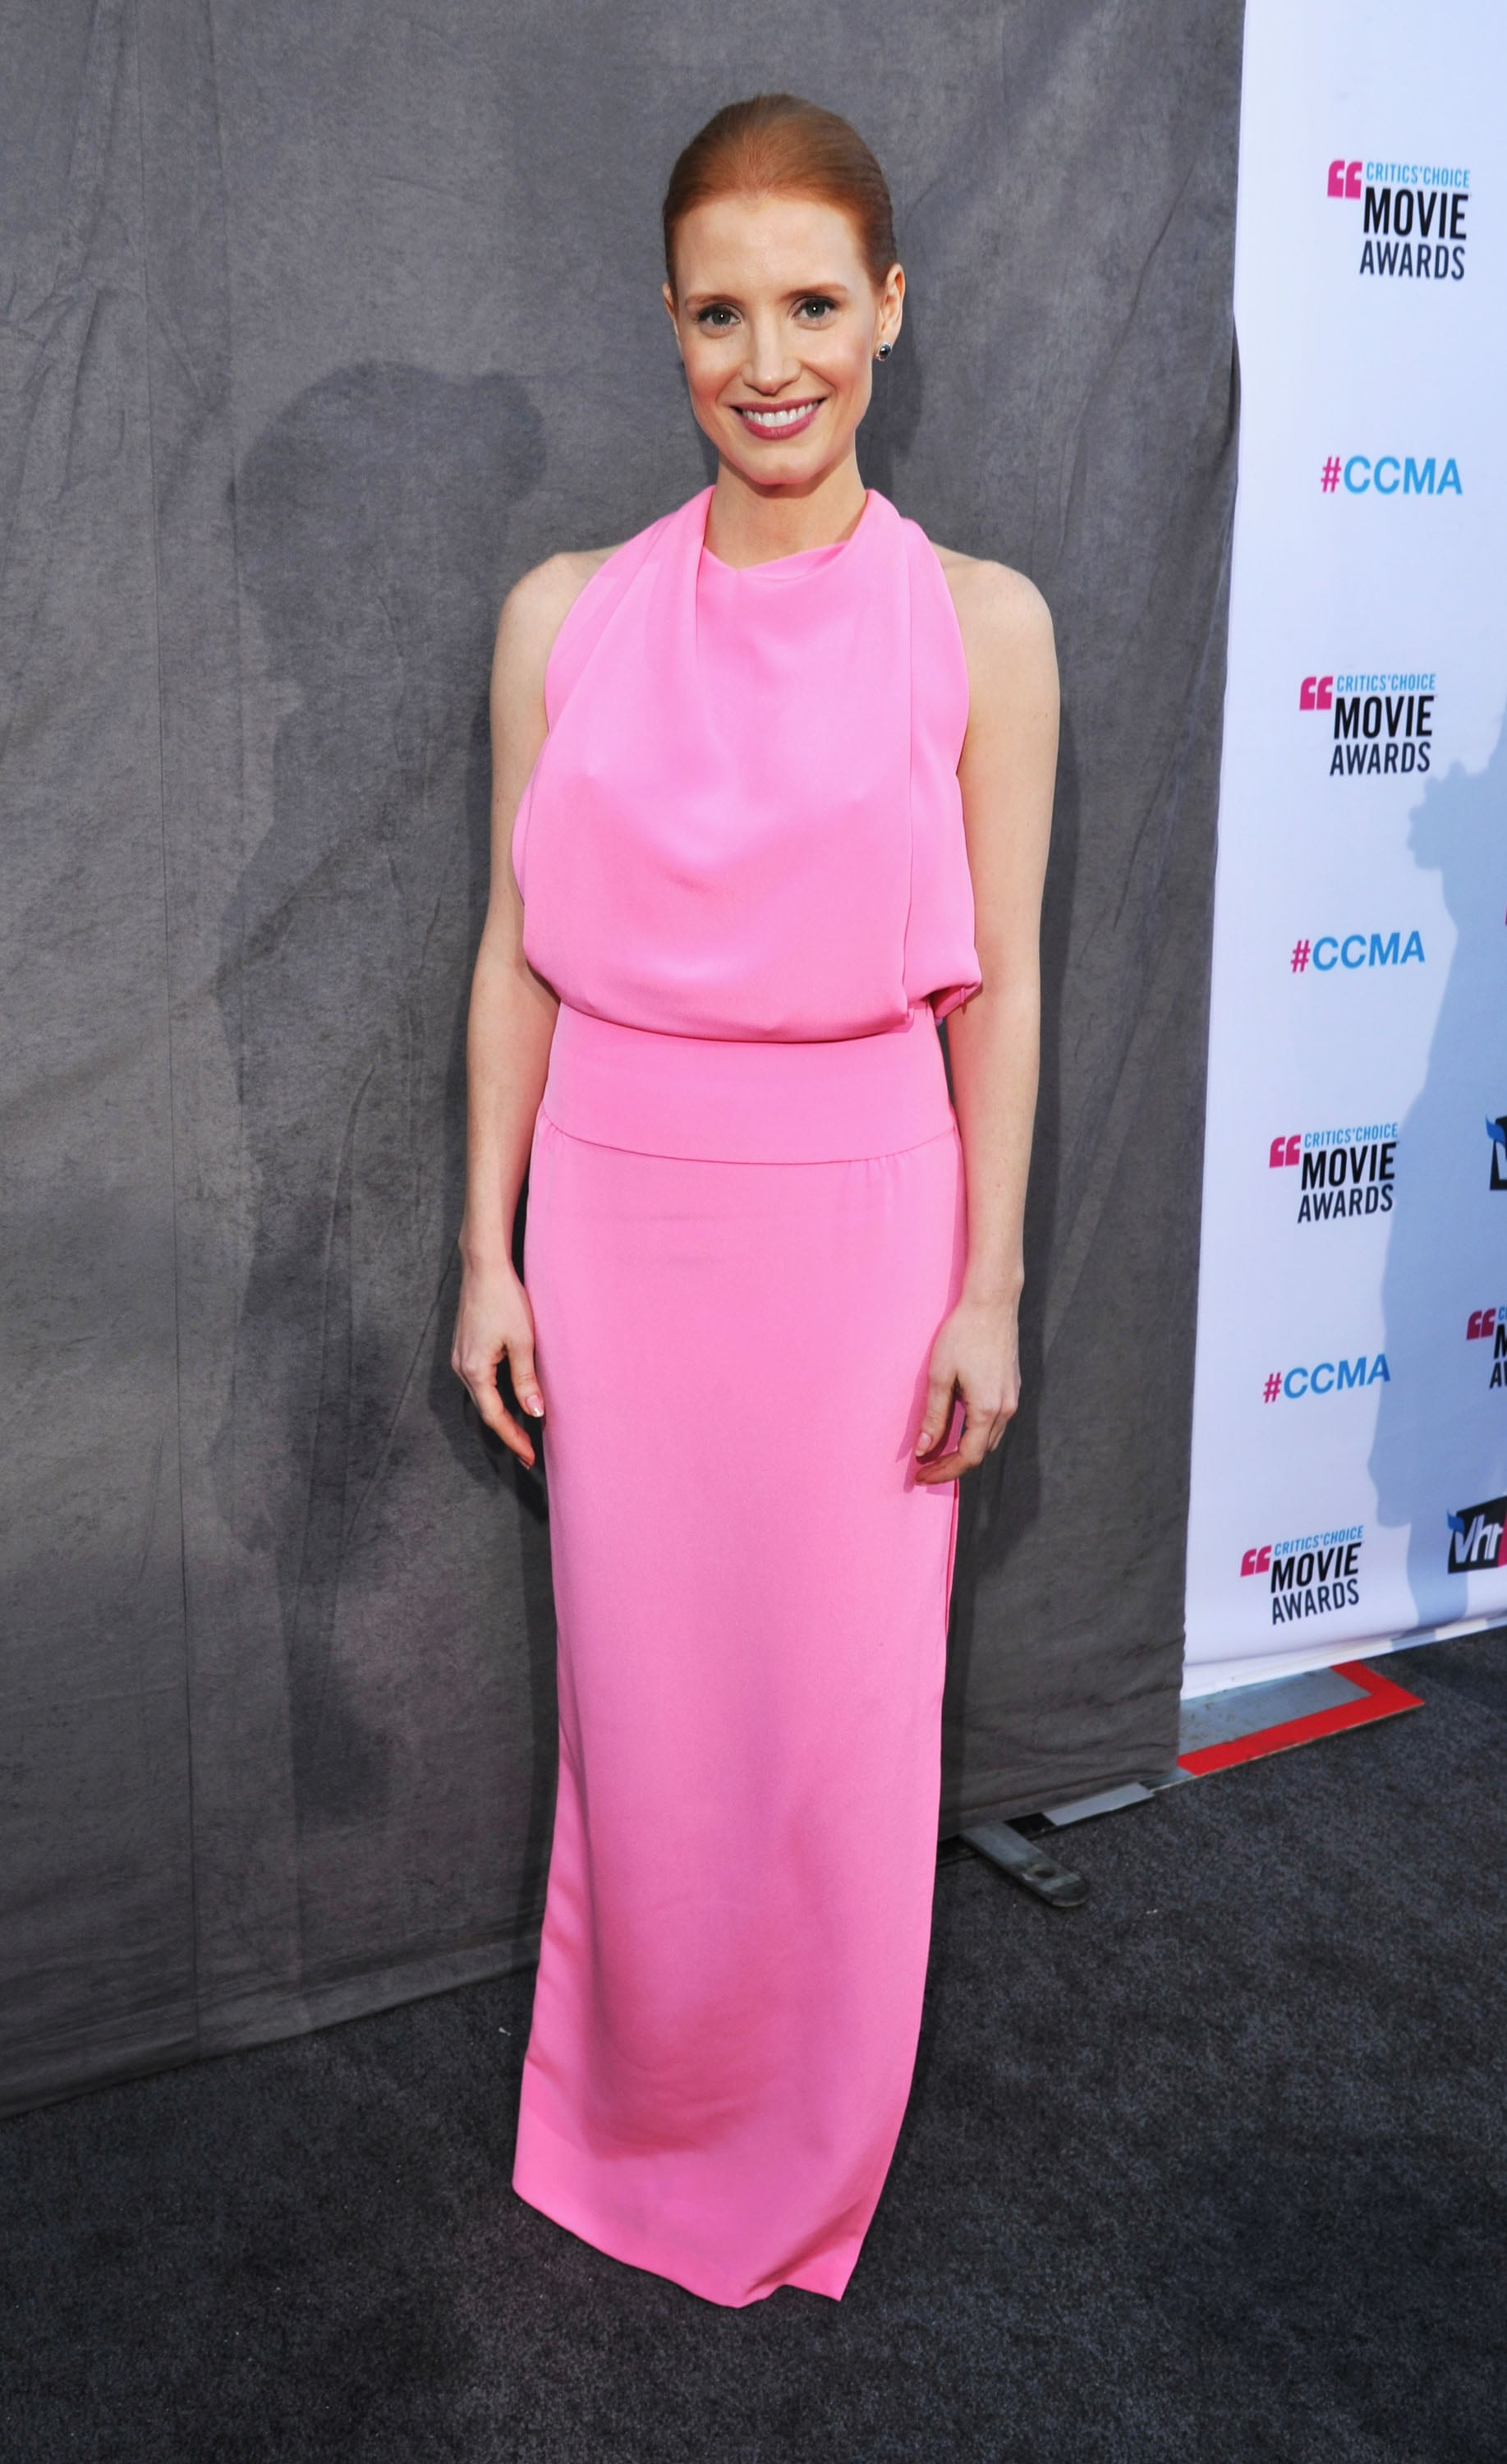 Jessica Chastain in a pink dress at the 2012 Critics' Choice Movie Awards.